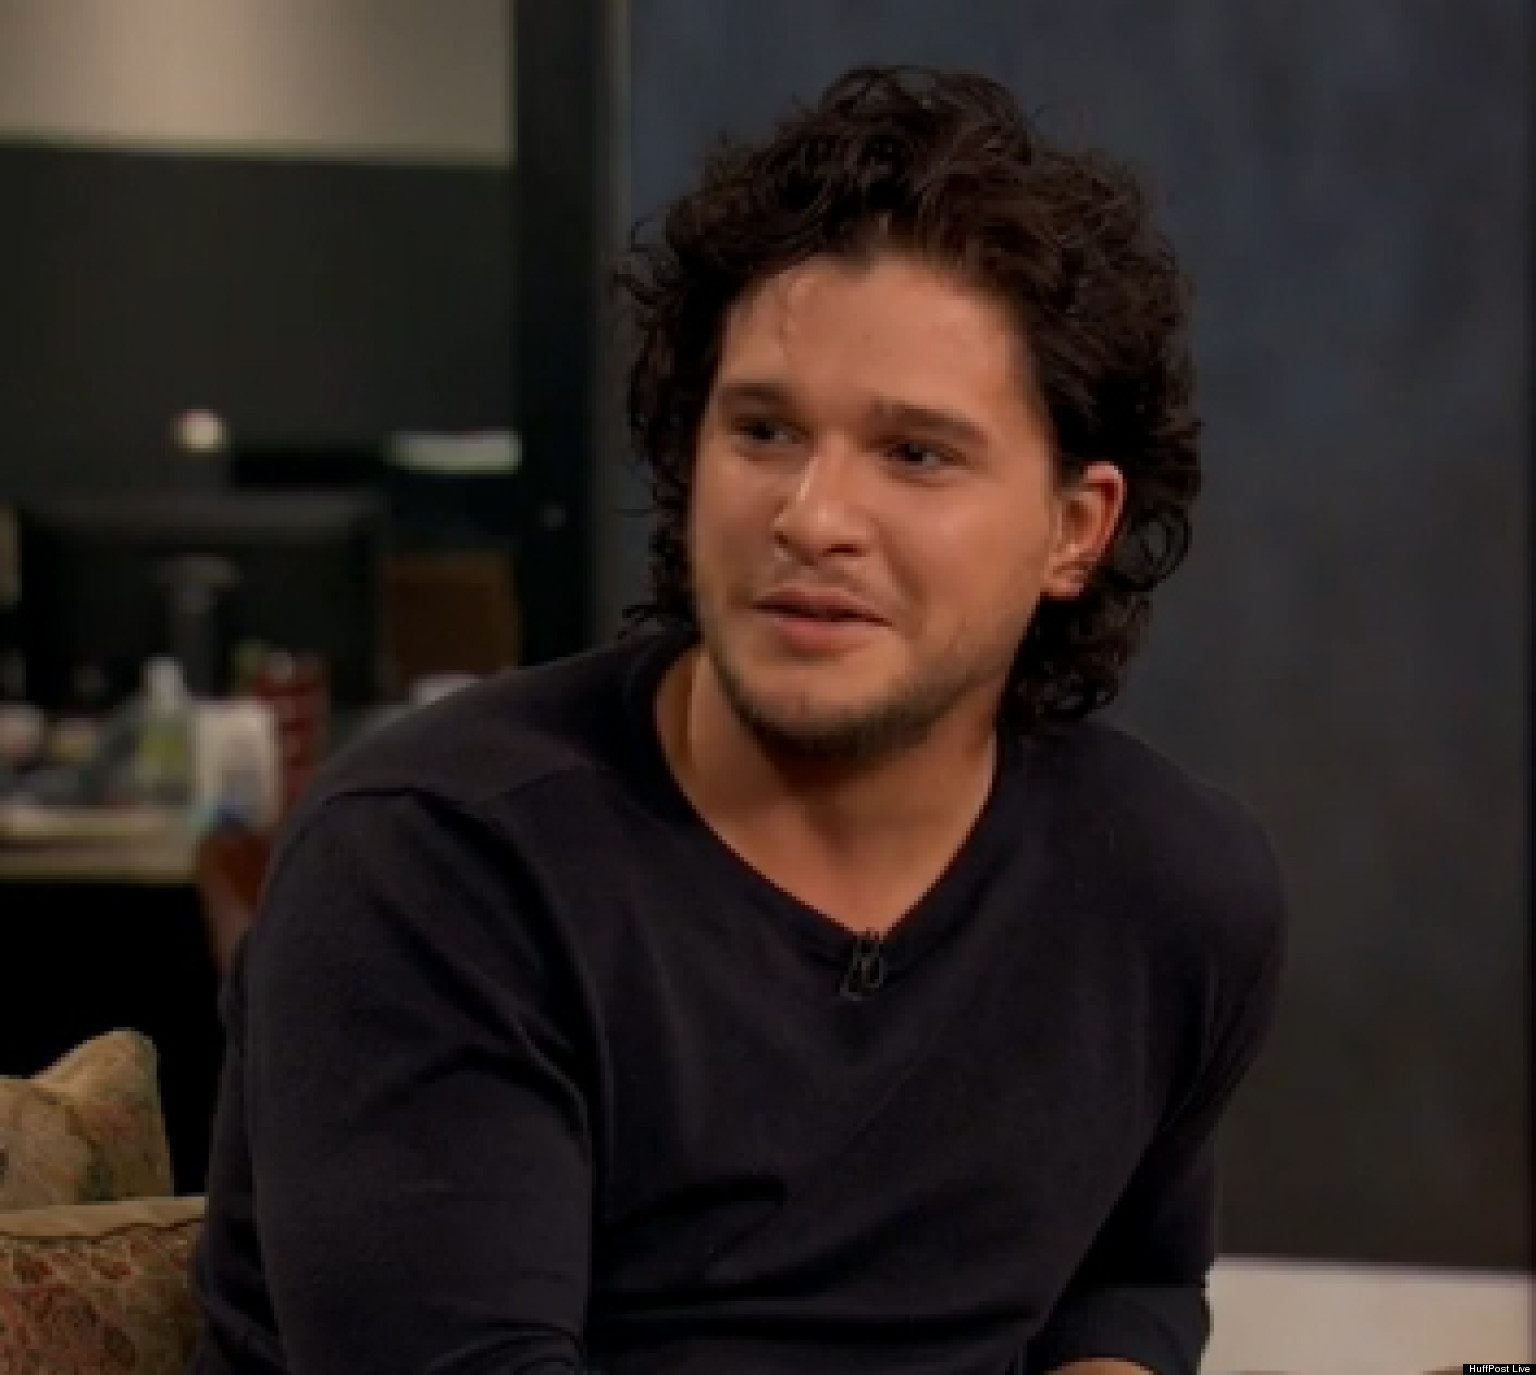 Kit Harington: Kit Harington, 'Game Of Thrones' Star, Reveals What He